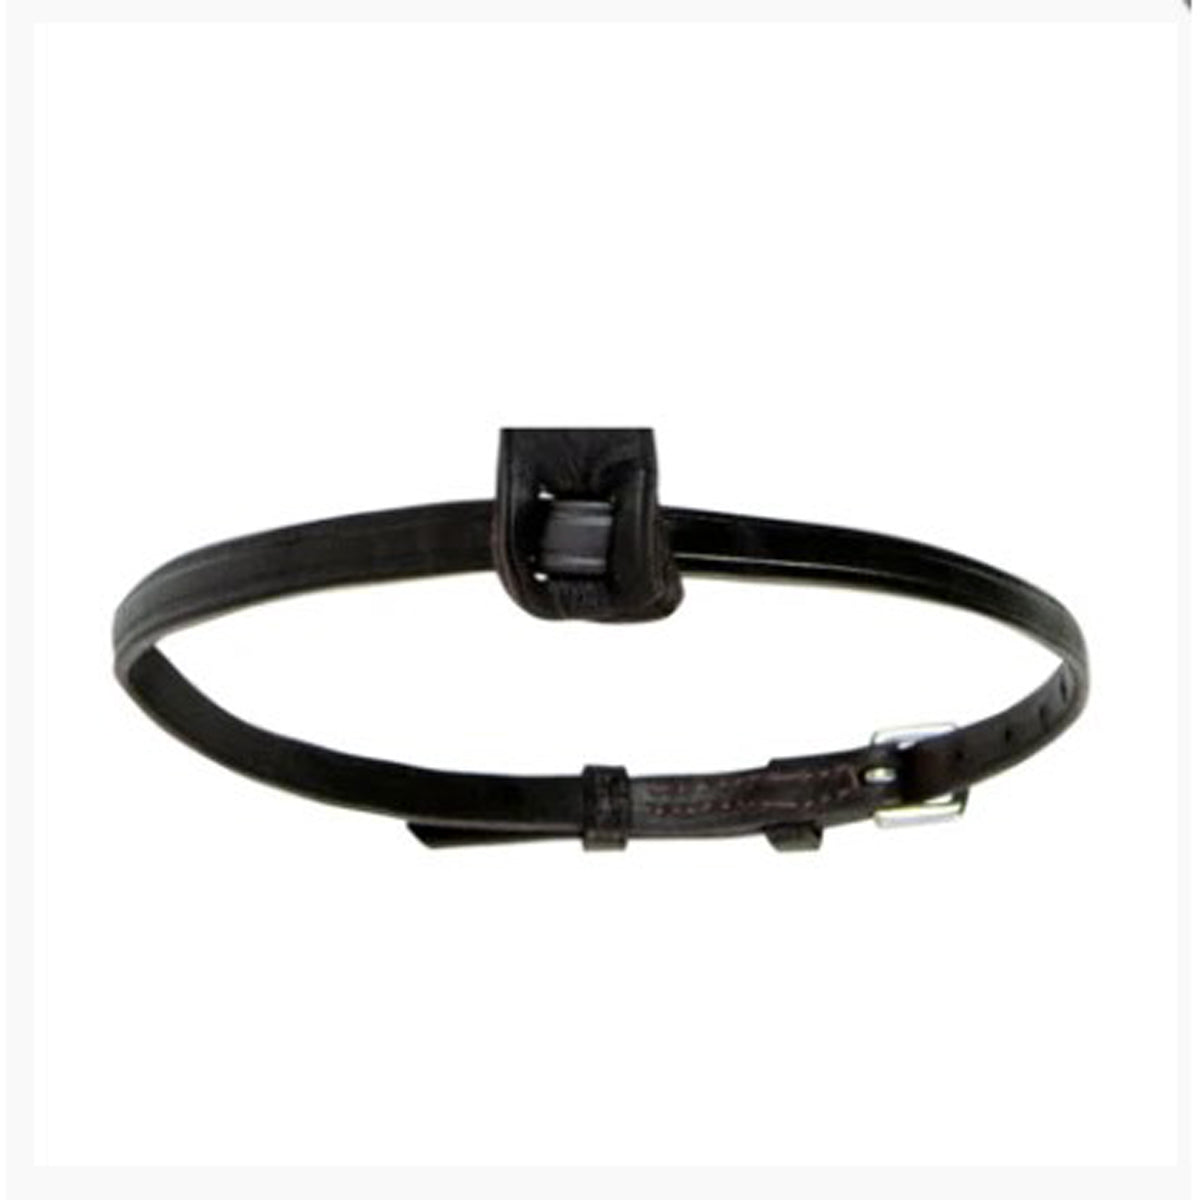 Walsh Flash Noseband Attachment